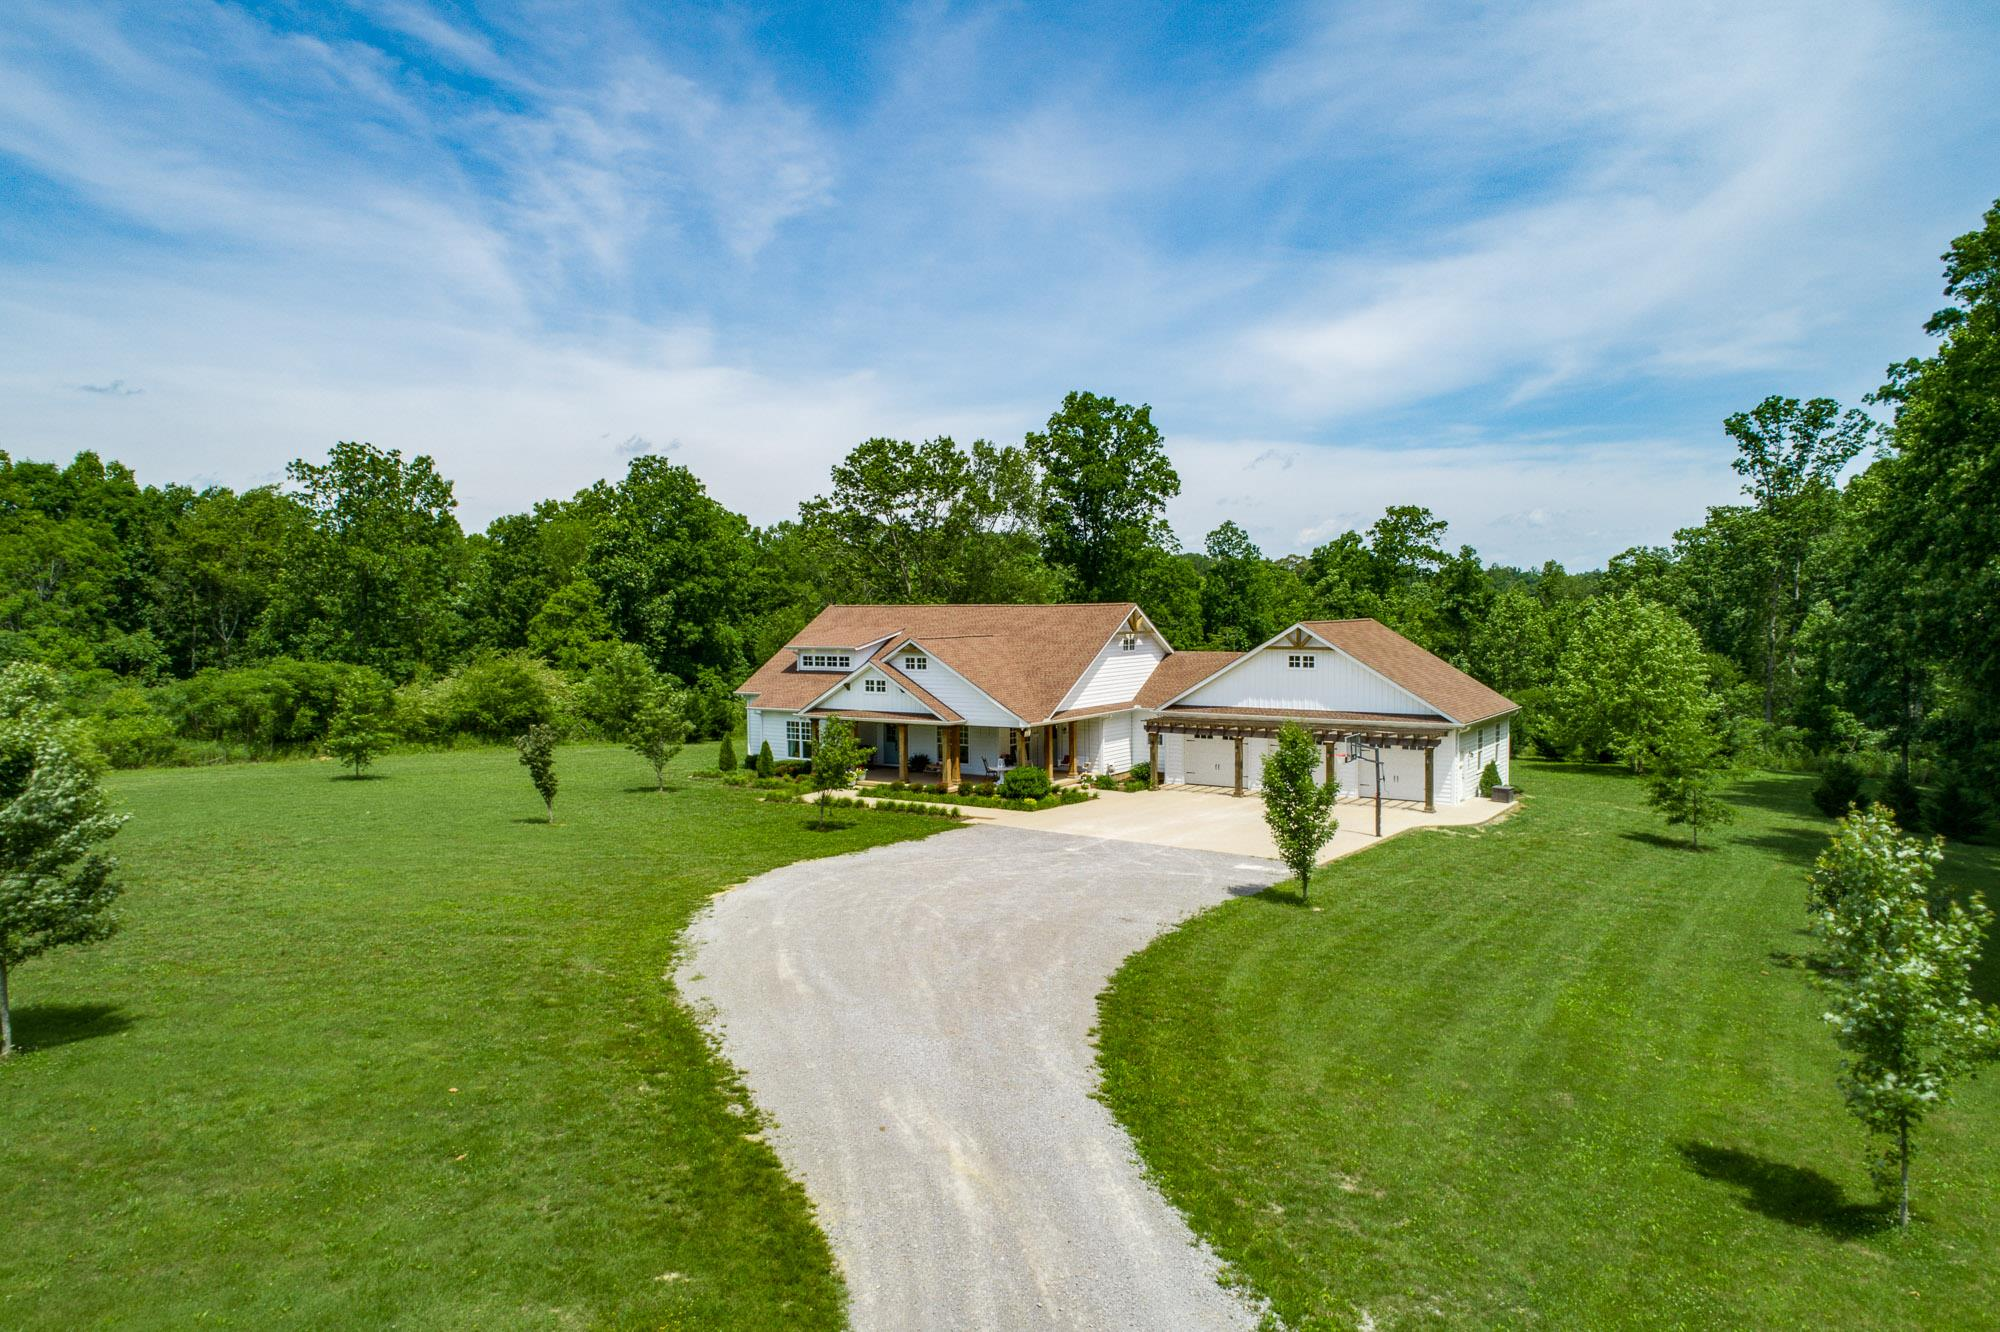 405 Creekside Dr, Smithville, TN 37166 - Smithville, TN real estate listing